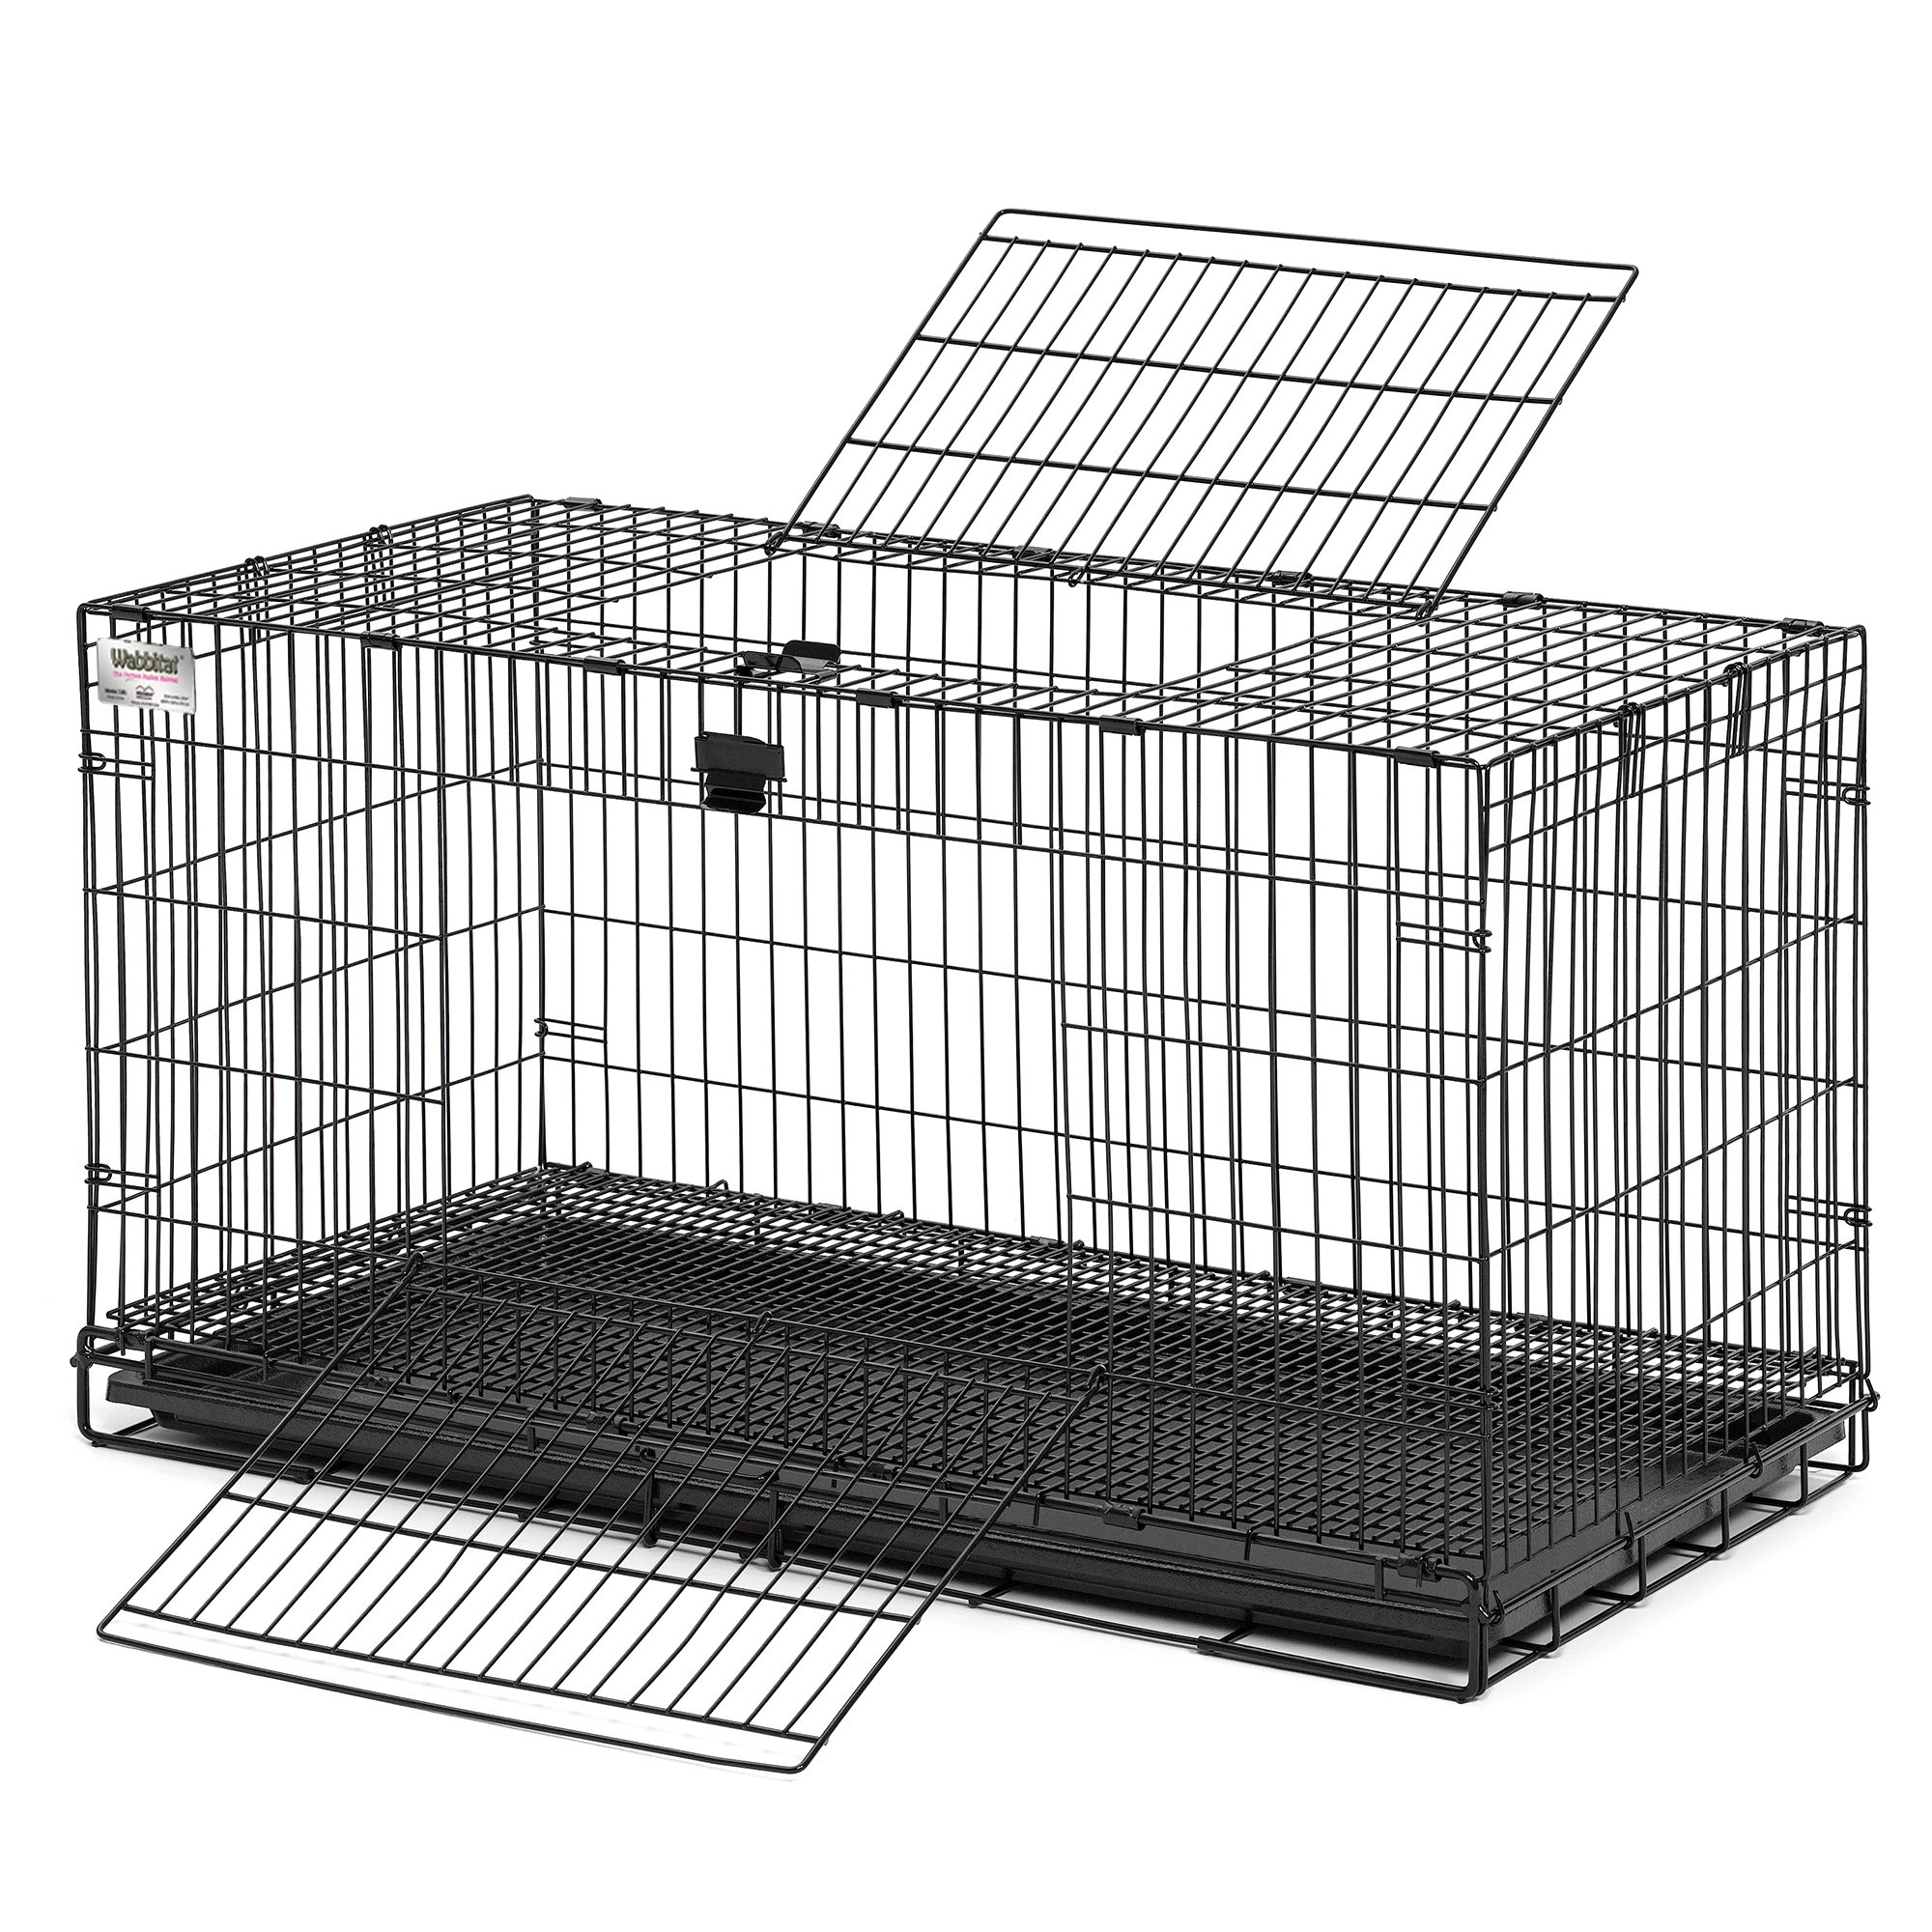 Midwest Wabbitat Folding Rabbit Cage by MidWest Homes for Pets